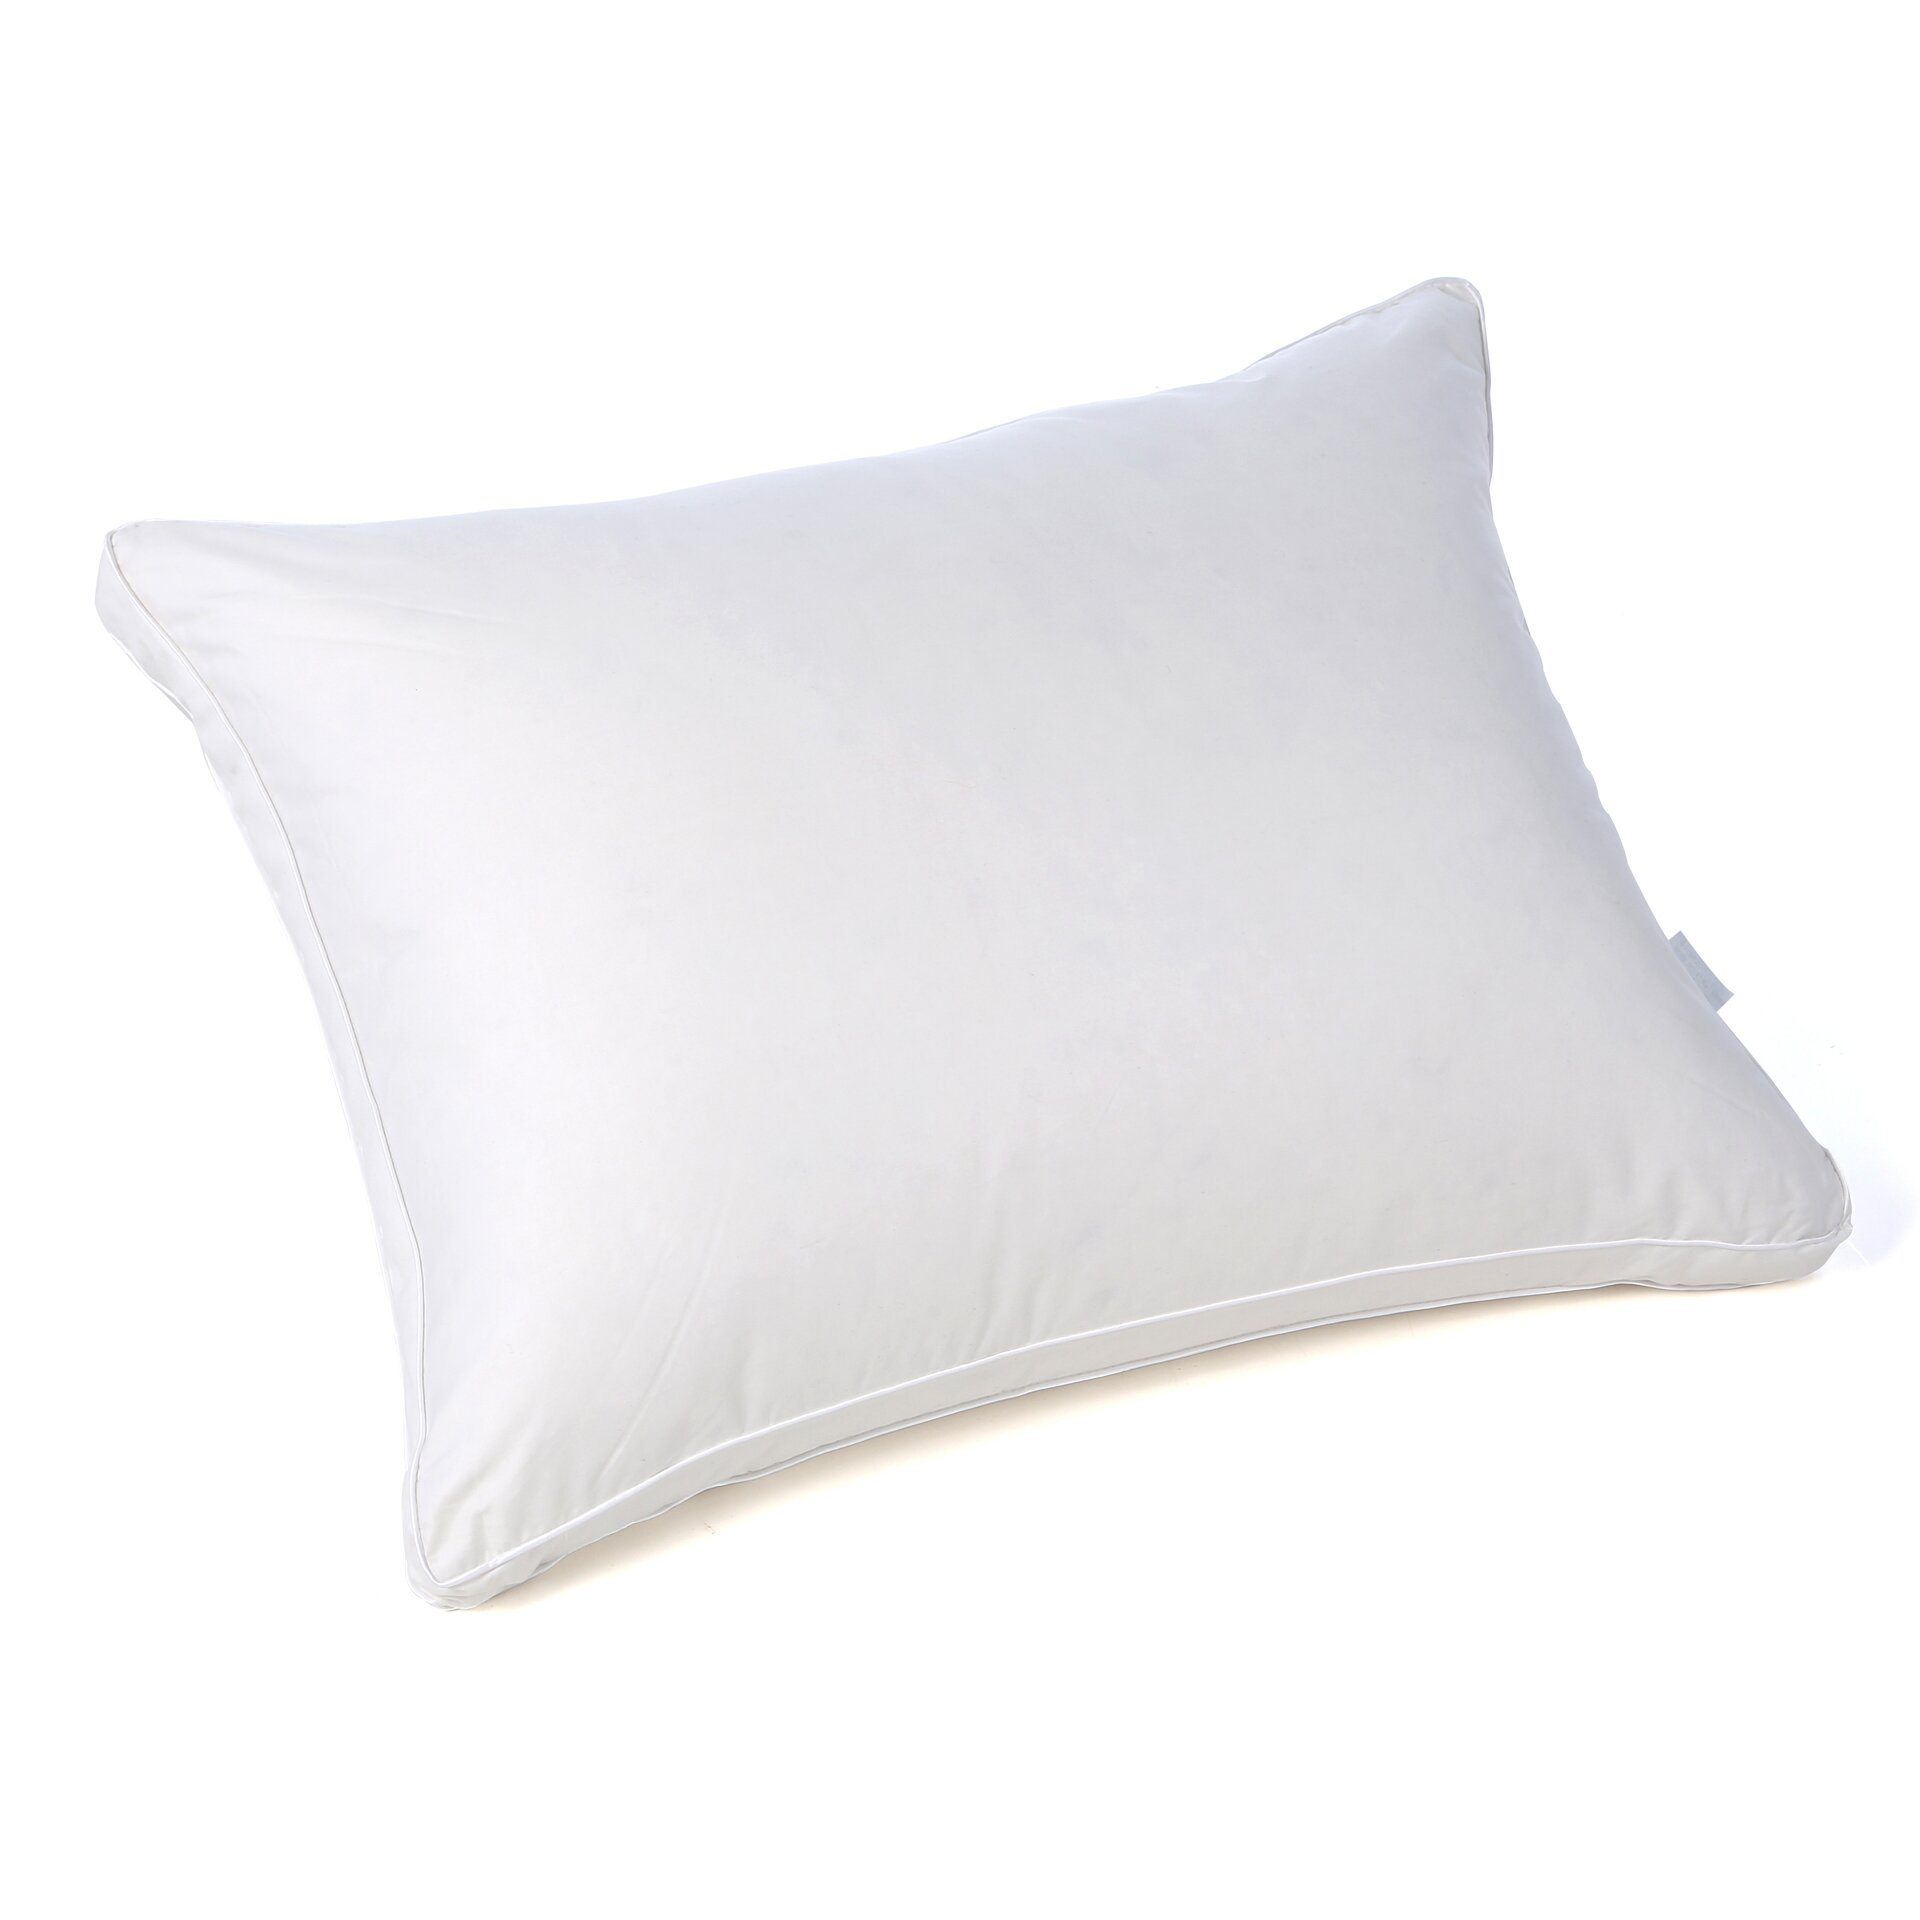 Goose Down Throw Pillows : Downright HIMALAYA 700 White Goose Down Pillow Wayfair